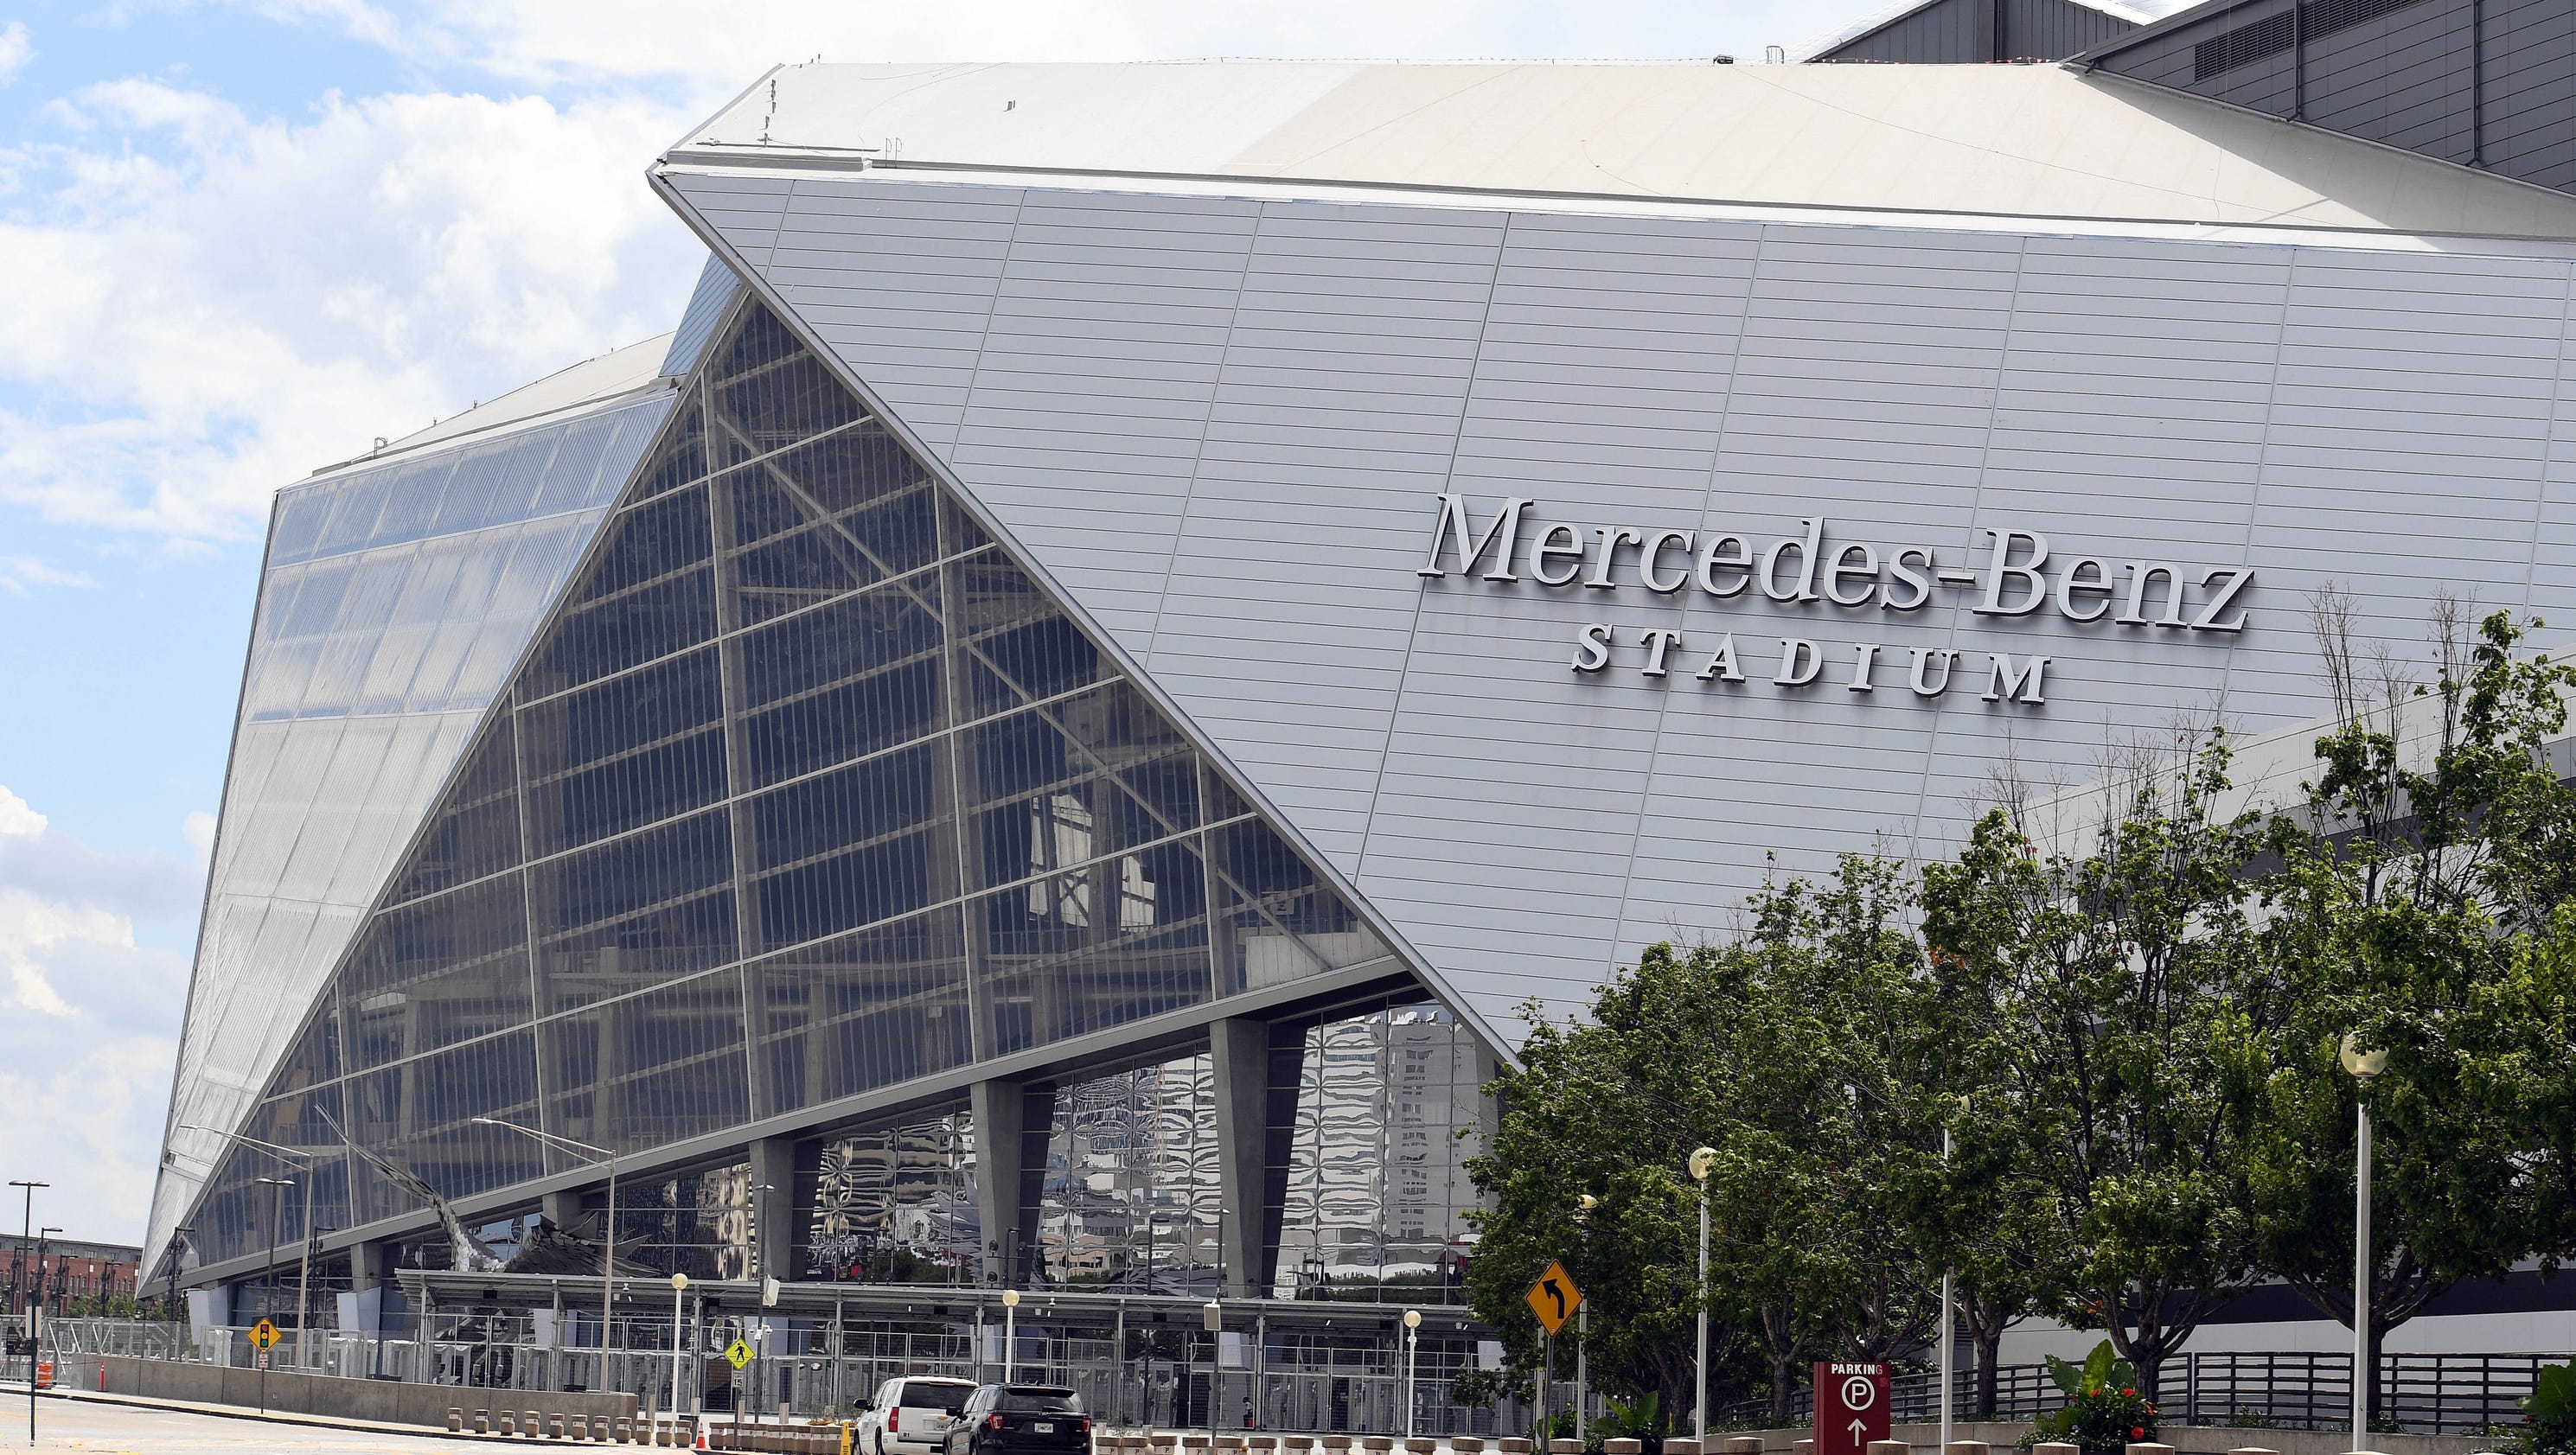 Check out atlanta 39 s new mercedes benz stadium for Mercedes benz stadium atlanta united